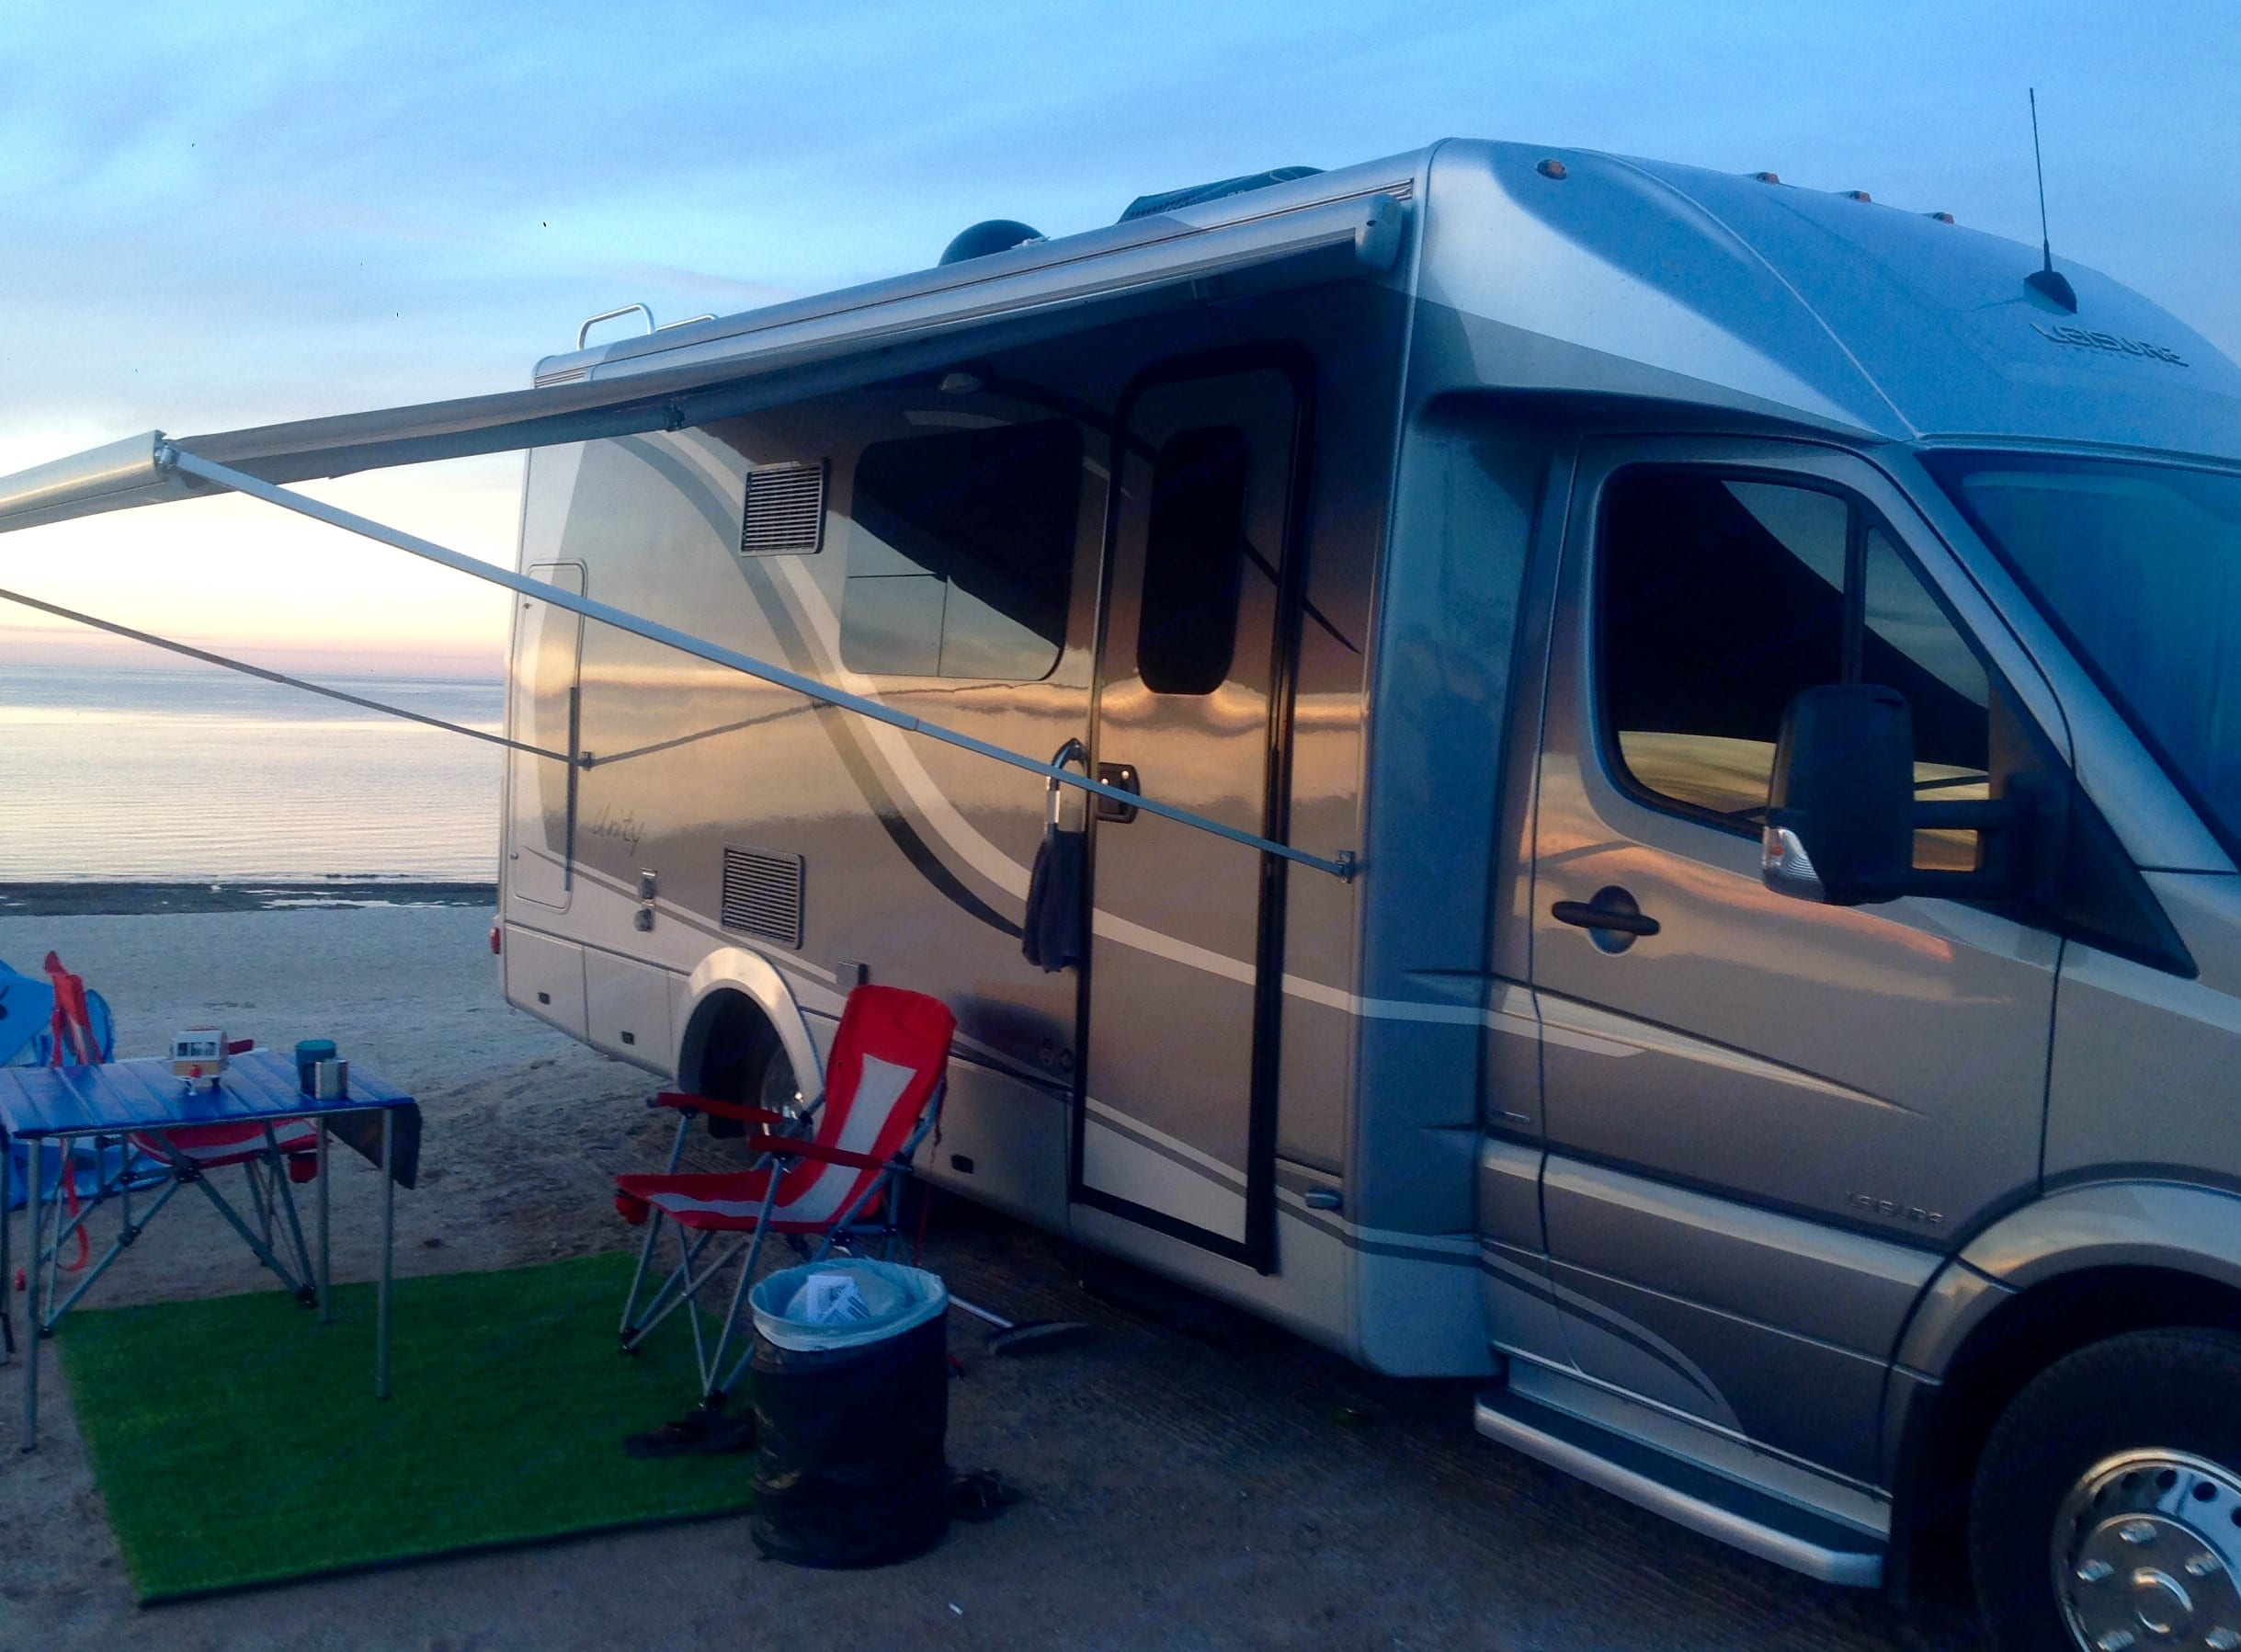 Camping on the beach in Southern California.. Leisure Travel Unity 2014